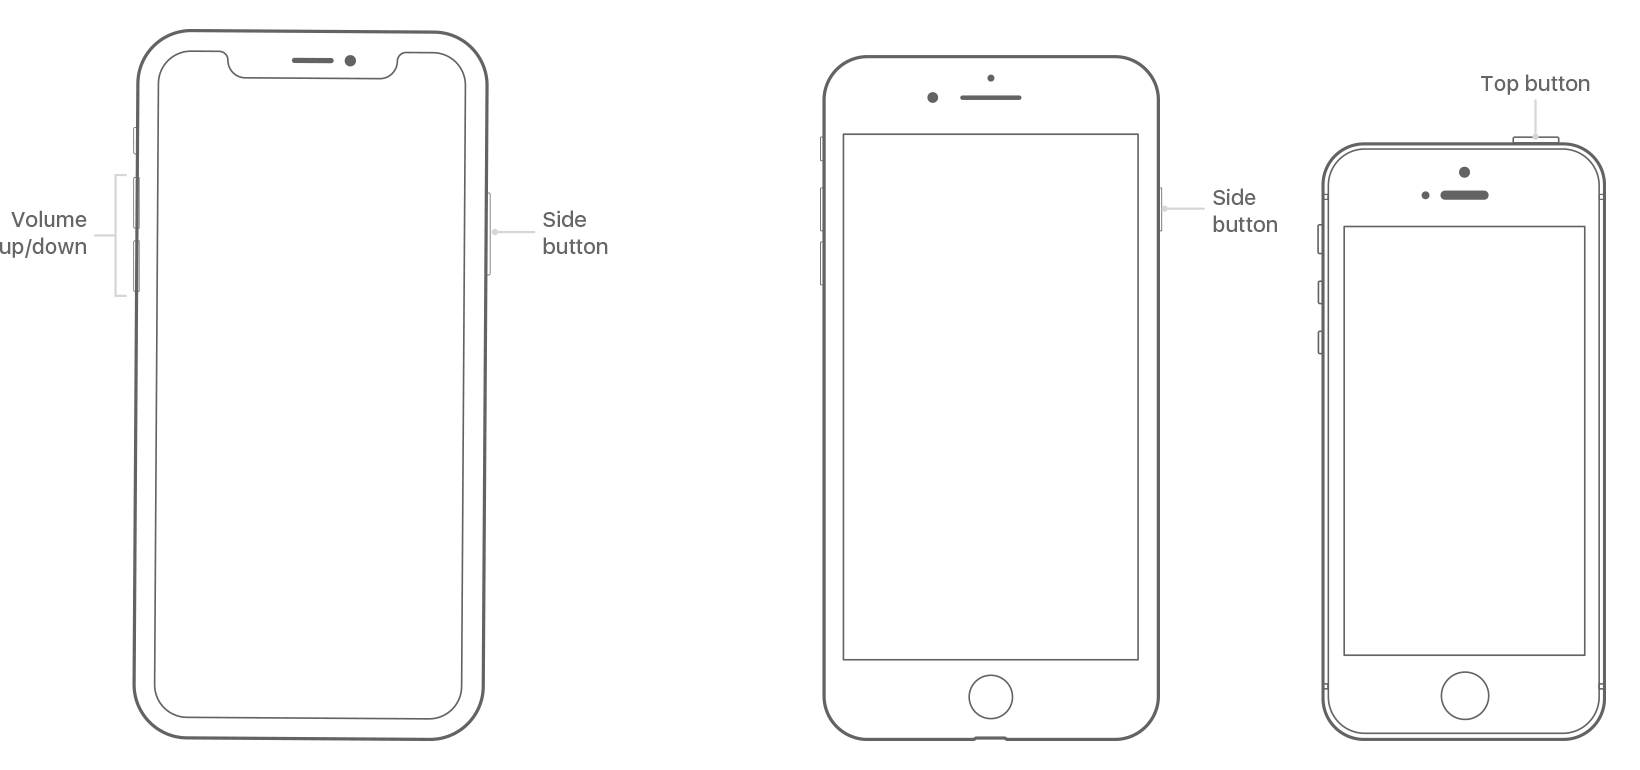 iphone-x-iphone7-iphone-se-restart-buttons-switches.png